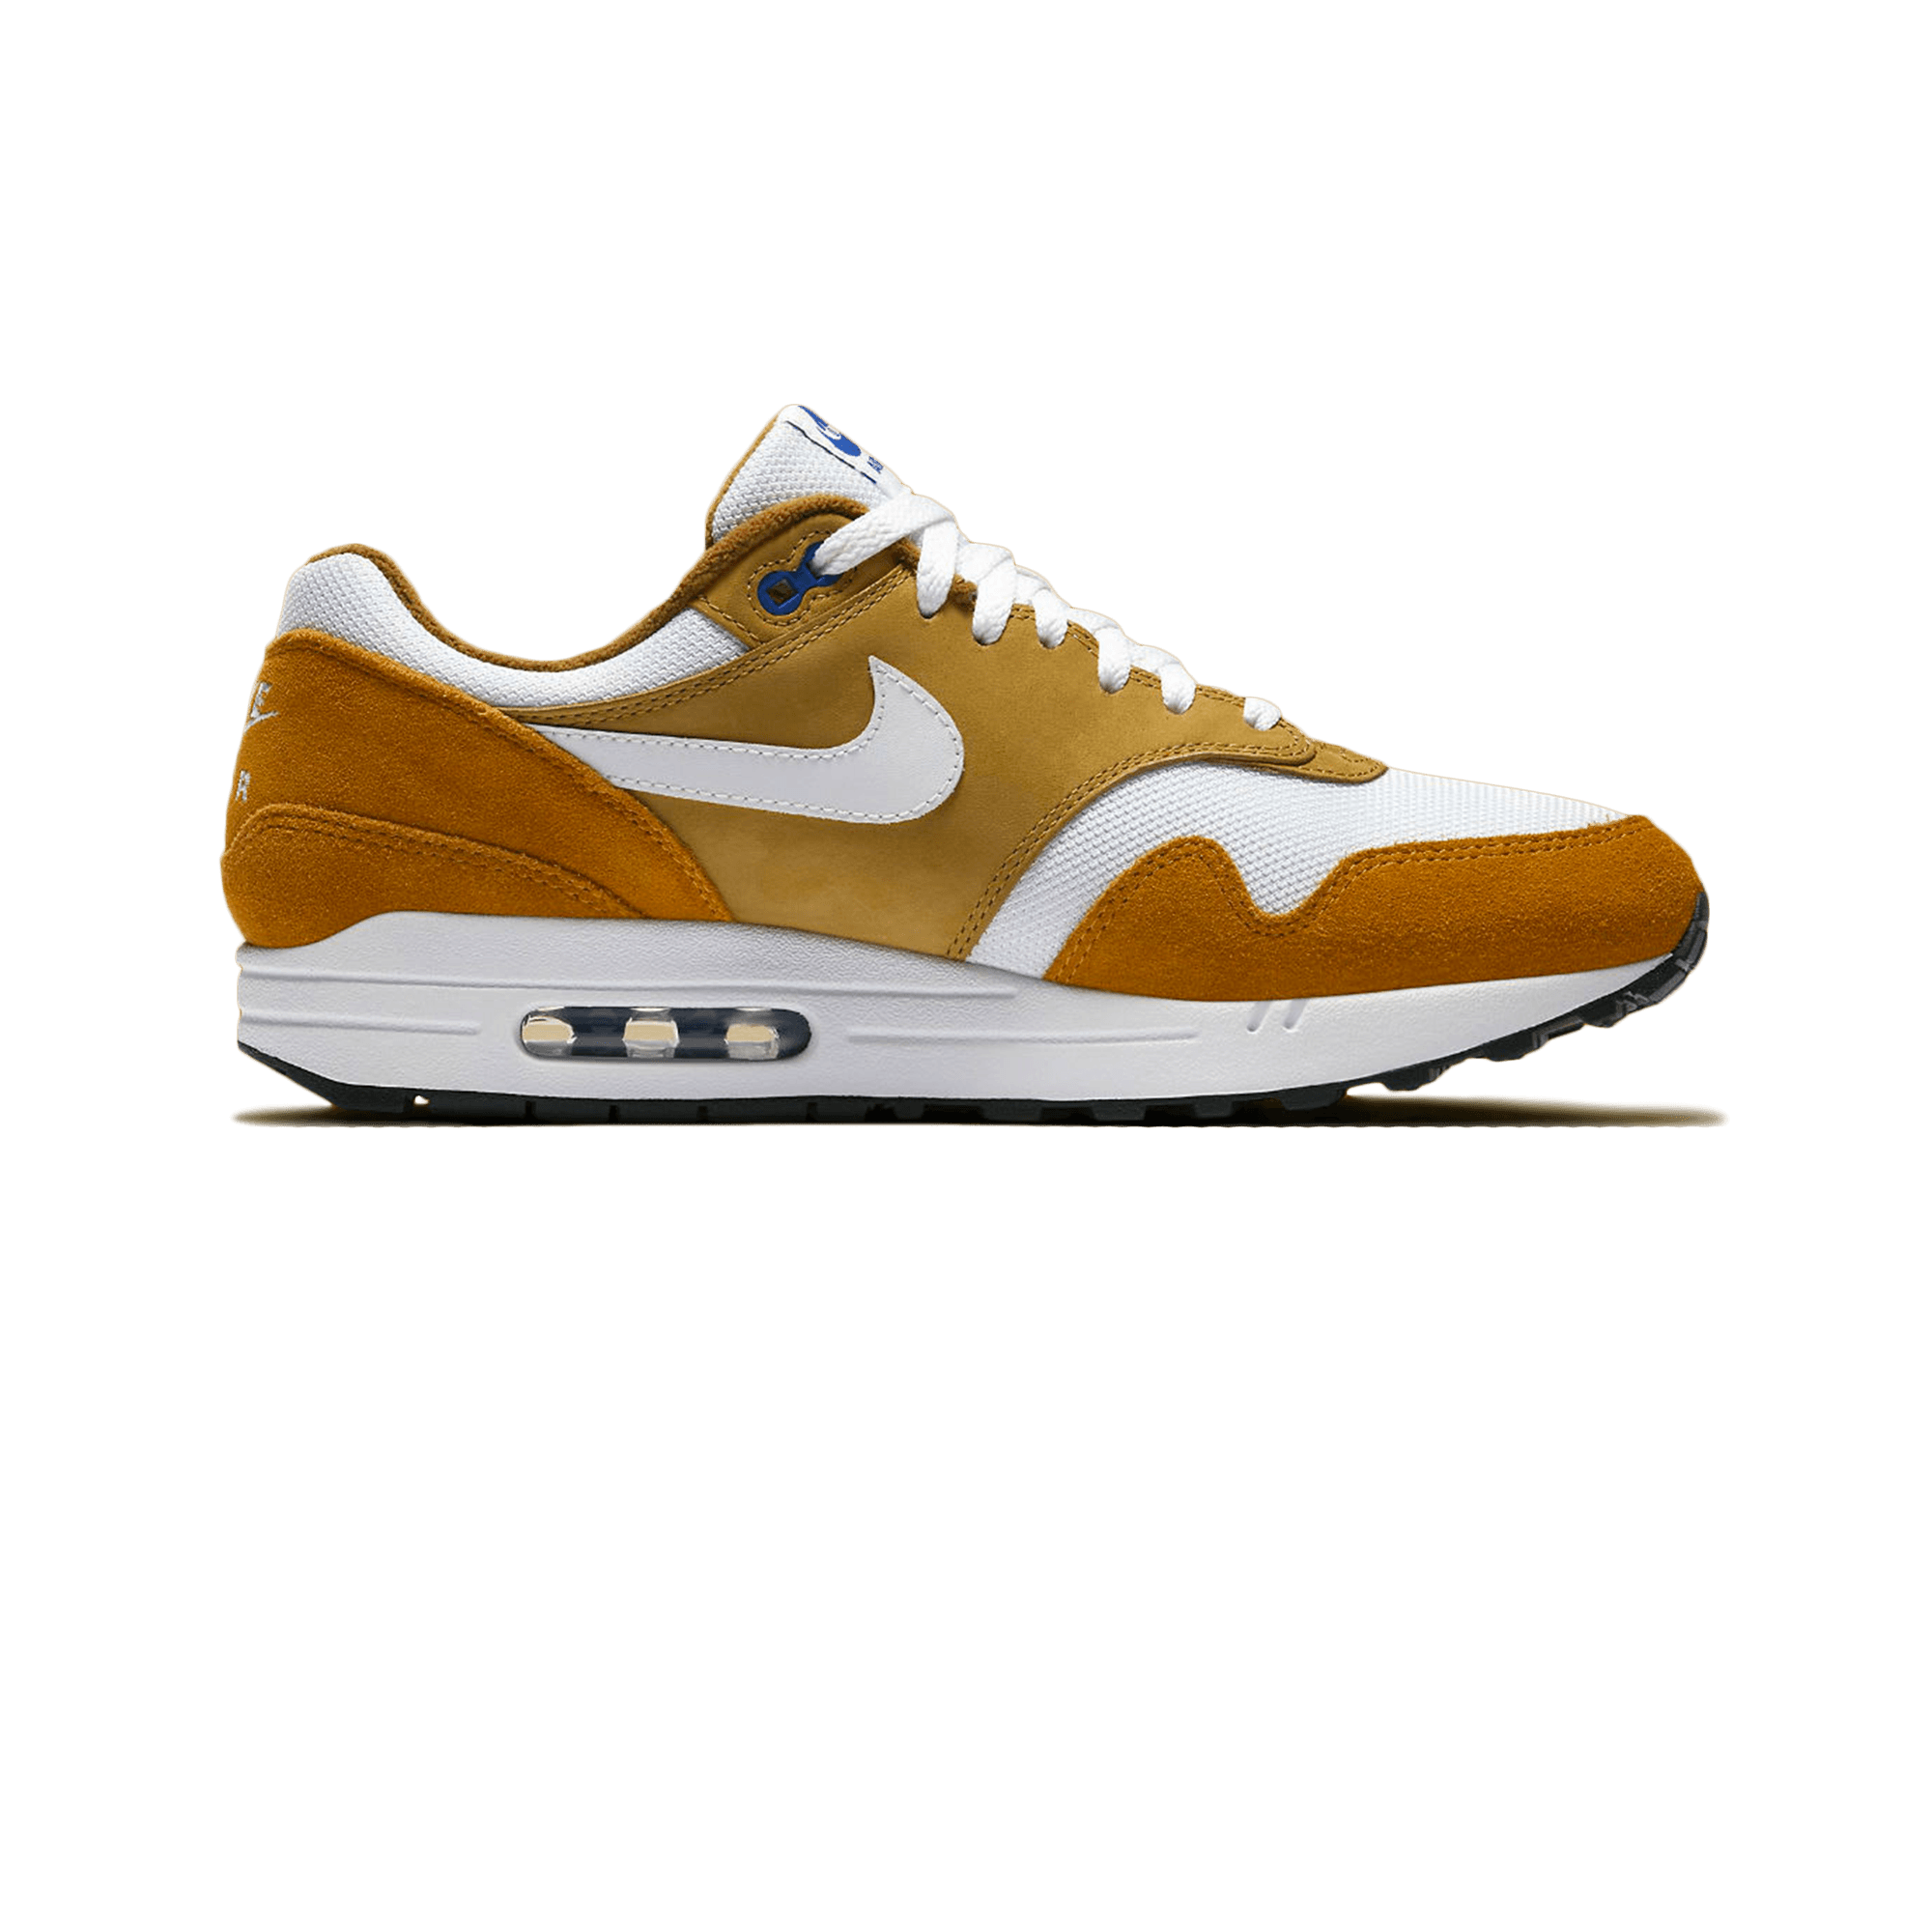 nike air max 1 premium retro nz